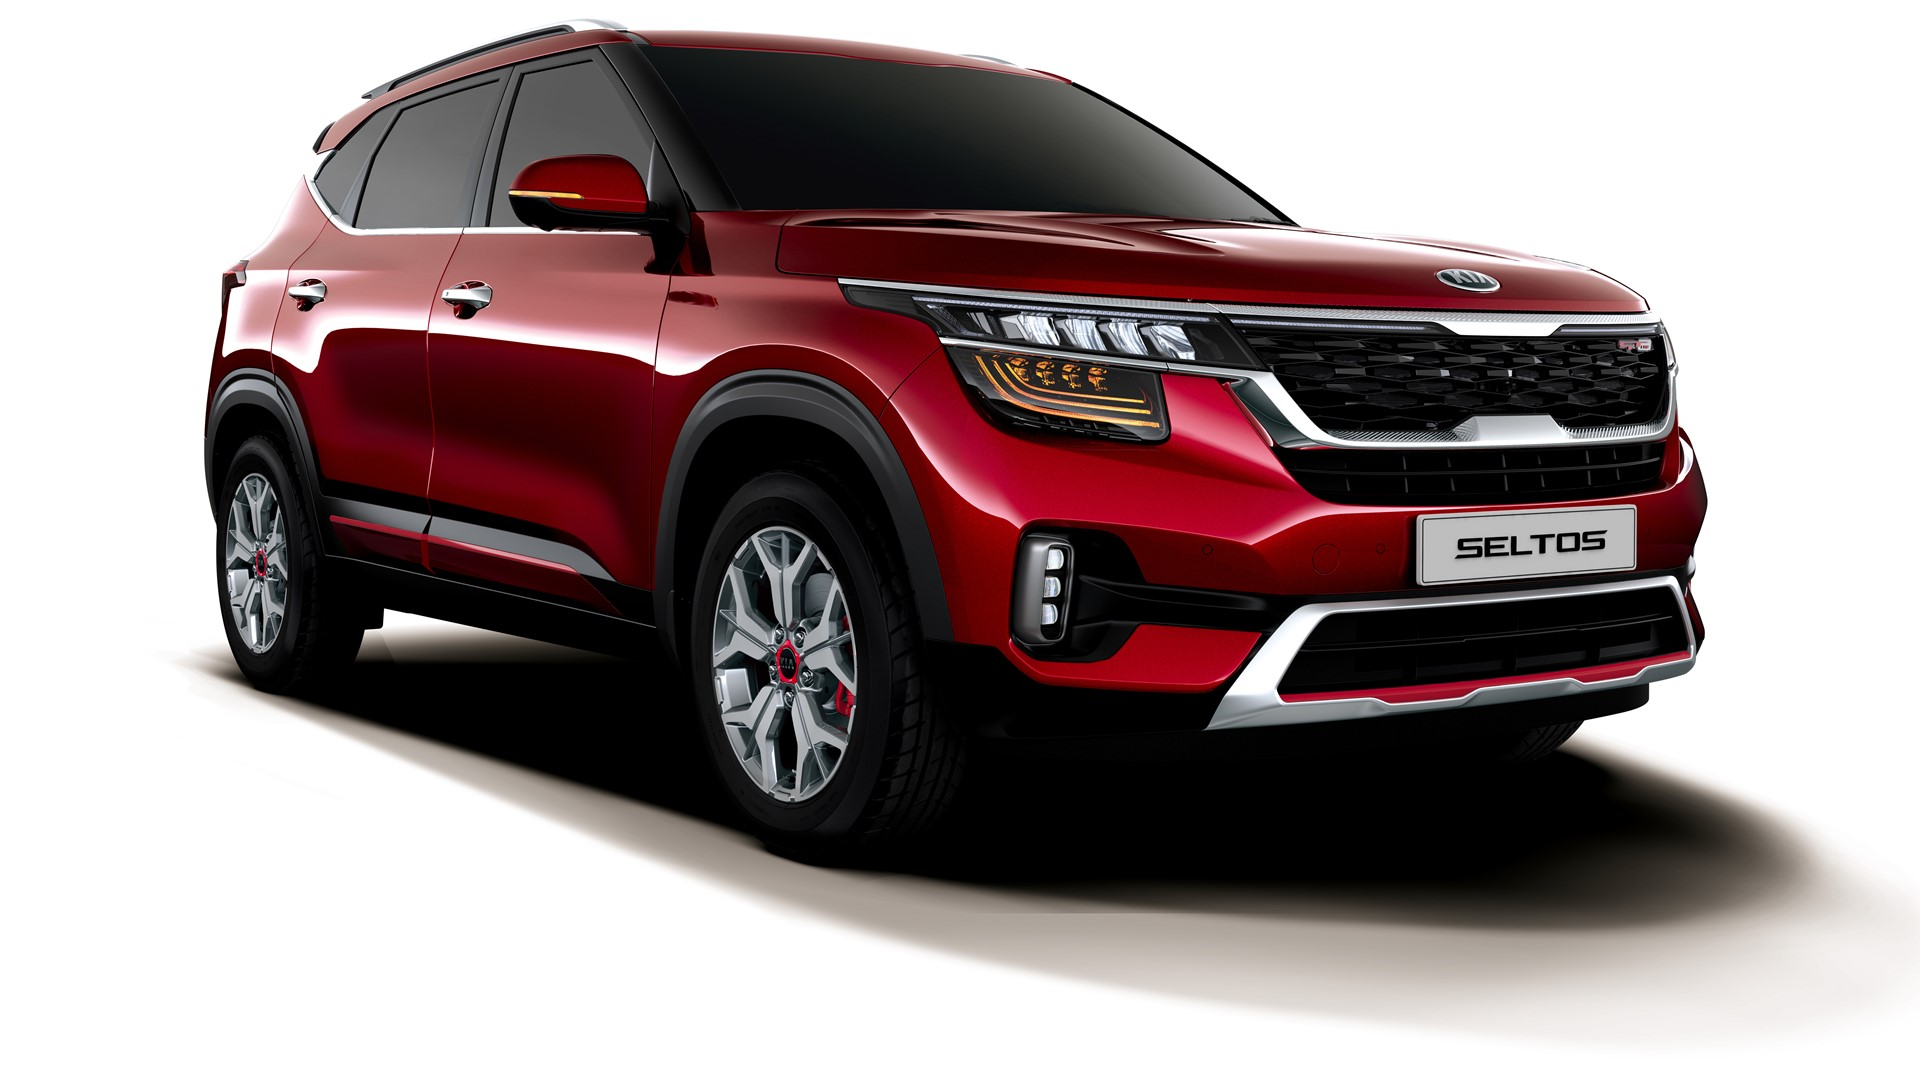 """The Korean carmaker Kia Motors has updated the subcompact SUV Sonet and Seltos in the Indian car market. The prices of both the vehicles now starts from Rs 6.79 lakh and Rs 9.95 lakh respectively. Both the prices are ex-showroom prices. Speaking about the features introduced in the upgraded versions of both the vehicles include newly designed logo. The other features include the integration of paddle shifters in the automatic trims of both the Sonet and Seltos. Along with these features the company has also introduced iMT technology in the HTK+ variant of Seltos empowered with a 1.5-litre petrol engine.  Speaking the launch of updated Sonet and Seltos, Kookhyun Shim, Managing Director and Chief Executive Officer, Kia India said, """"The refreshed editions of Seltos and Sonet mark the first steps towards our transformation in India and reiterate our new brand purpose of inspiring consumers through products, services and their experiences with the brand. The evolving needs of the customers are at the heart of our product strategy. Since launch, the Seltos and Sonet have been creating benchmarks in their respective segments, and with the additional variants, safety and convenience features, we are taking the game a notch higher. I am confident that Indian customers will keep showering their love on our products, and with these refreshed versions, we are ready to win India's heart once again.""""  Under the hood, the 2021 Seltos continues to be offered with the same existing engine options of 1.5-litre Smartstream petrol, 1.4-litre Smartstream T-GDI petrol, and 1.5-litre CRDi VGT diesel.  The transmission options include a 6-speed manual, an Intelligent Variable Transmission (iVT), a 6-speed torque converter, a 7-speed DCT automatic and a 6-speed iMT (Intelligent Manual Transmission). The 2021 Sonet comes equipped with 1.2-litre naturally aspirated petrol engine, 1.0-litre Turbo T-GDI petrol and a 1.5-litre diesel engine. The options for transmission includes a five-speed man"""